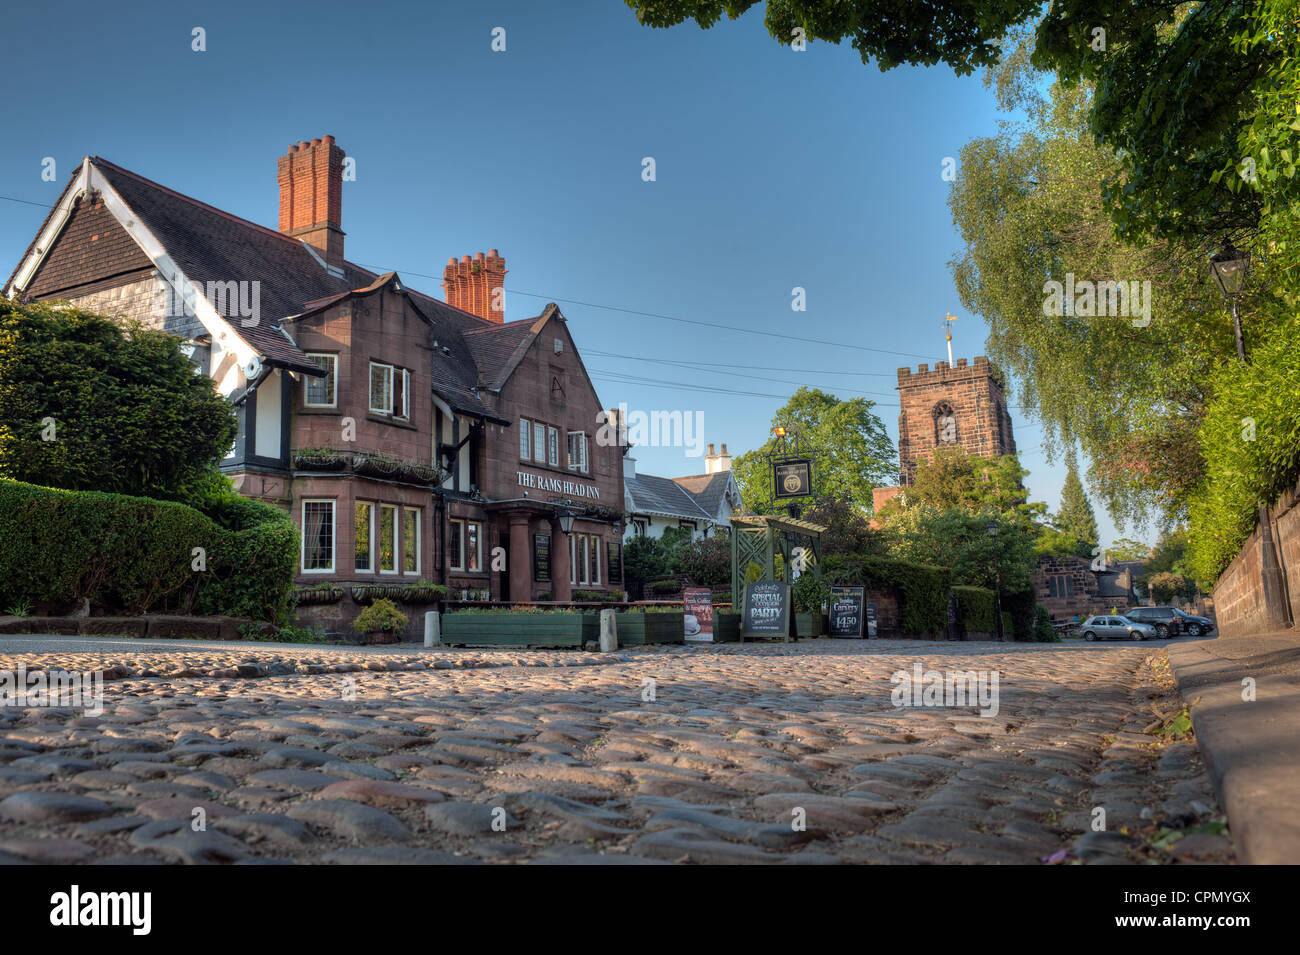 The Rams Head public house in Grappenhall village, Warrington, Cheshire, England. A picturesque village with a cobbled - Stock Image